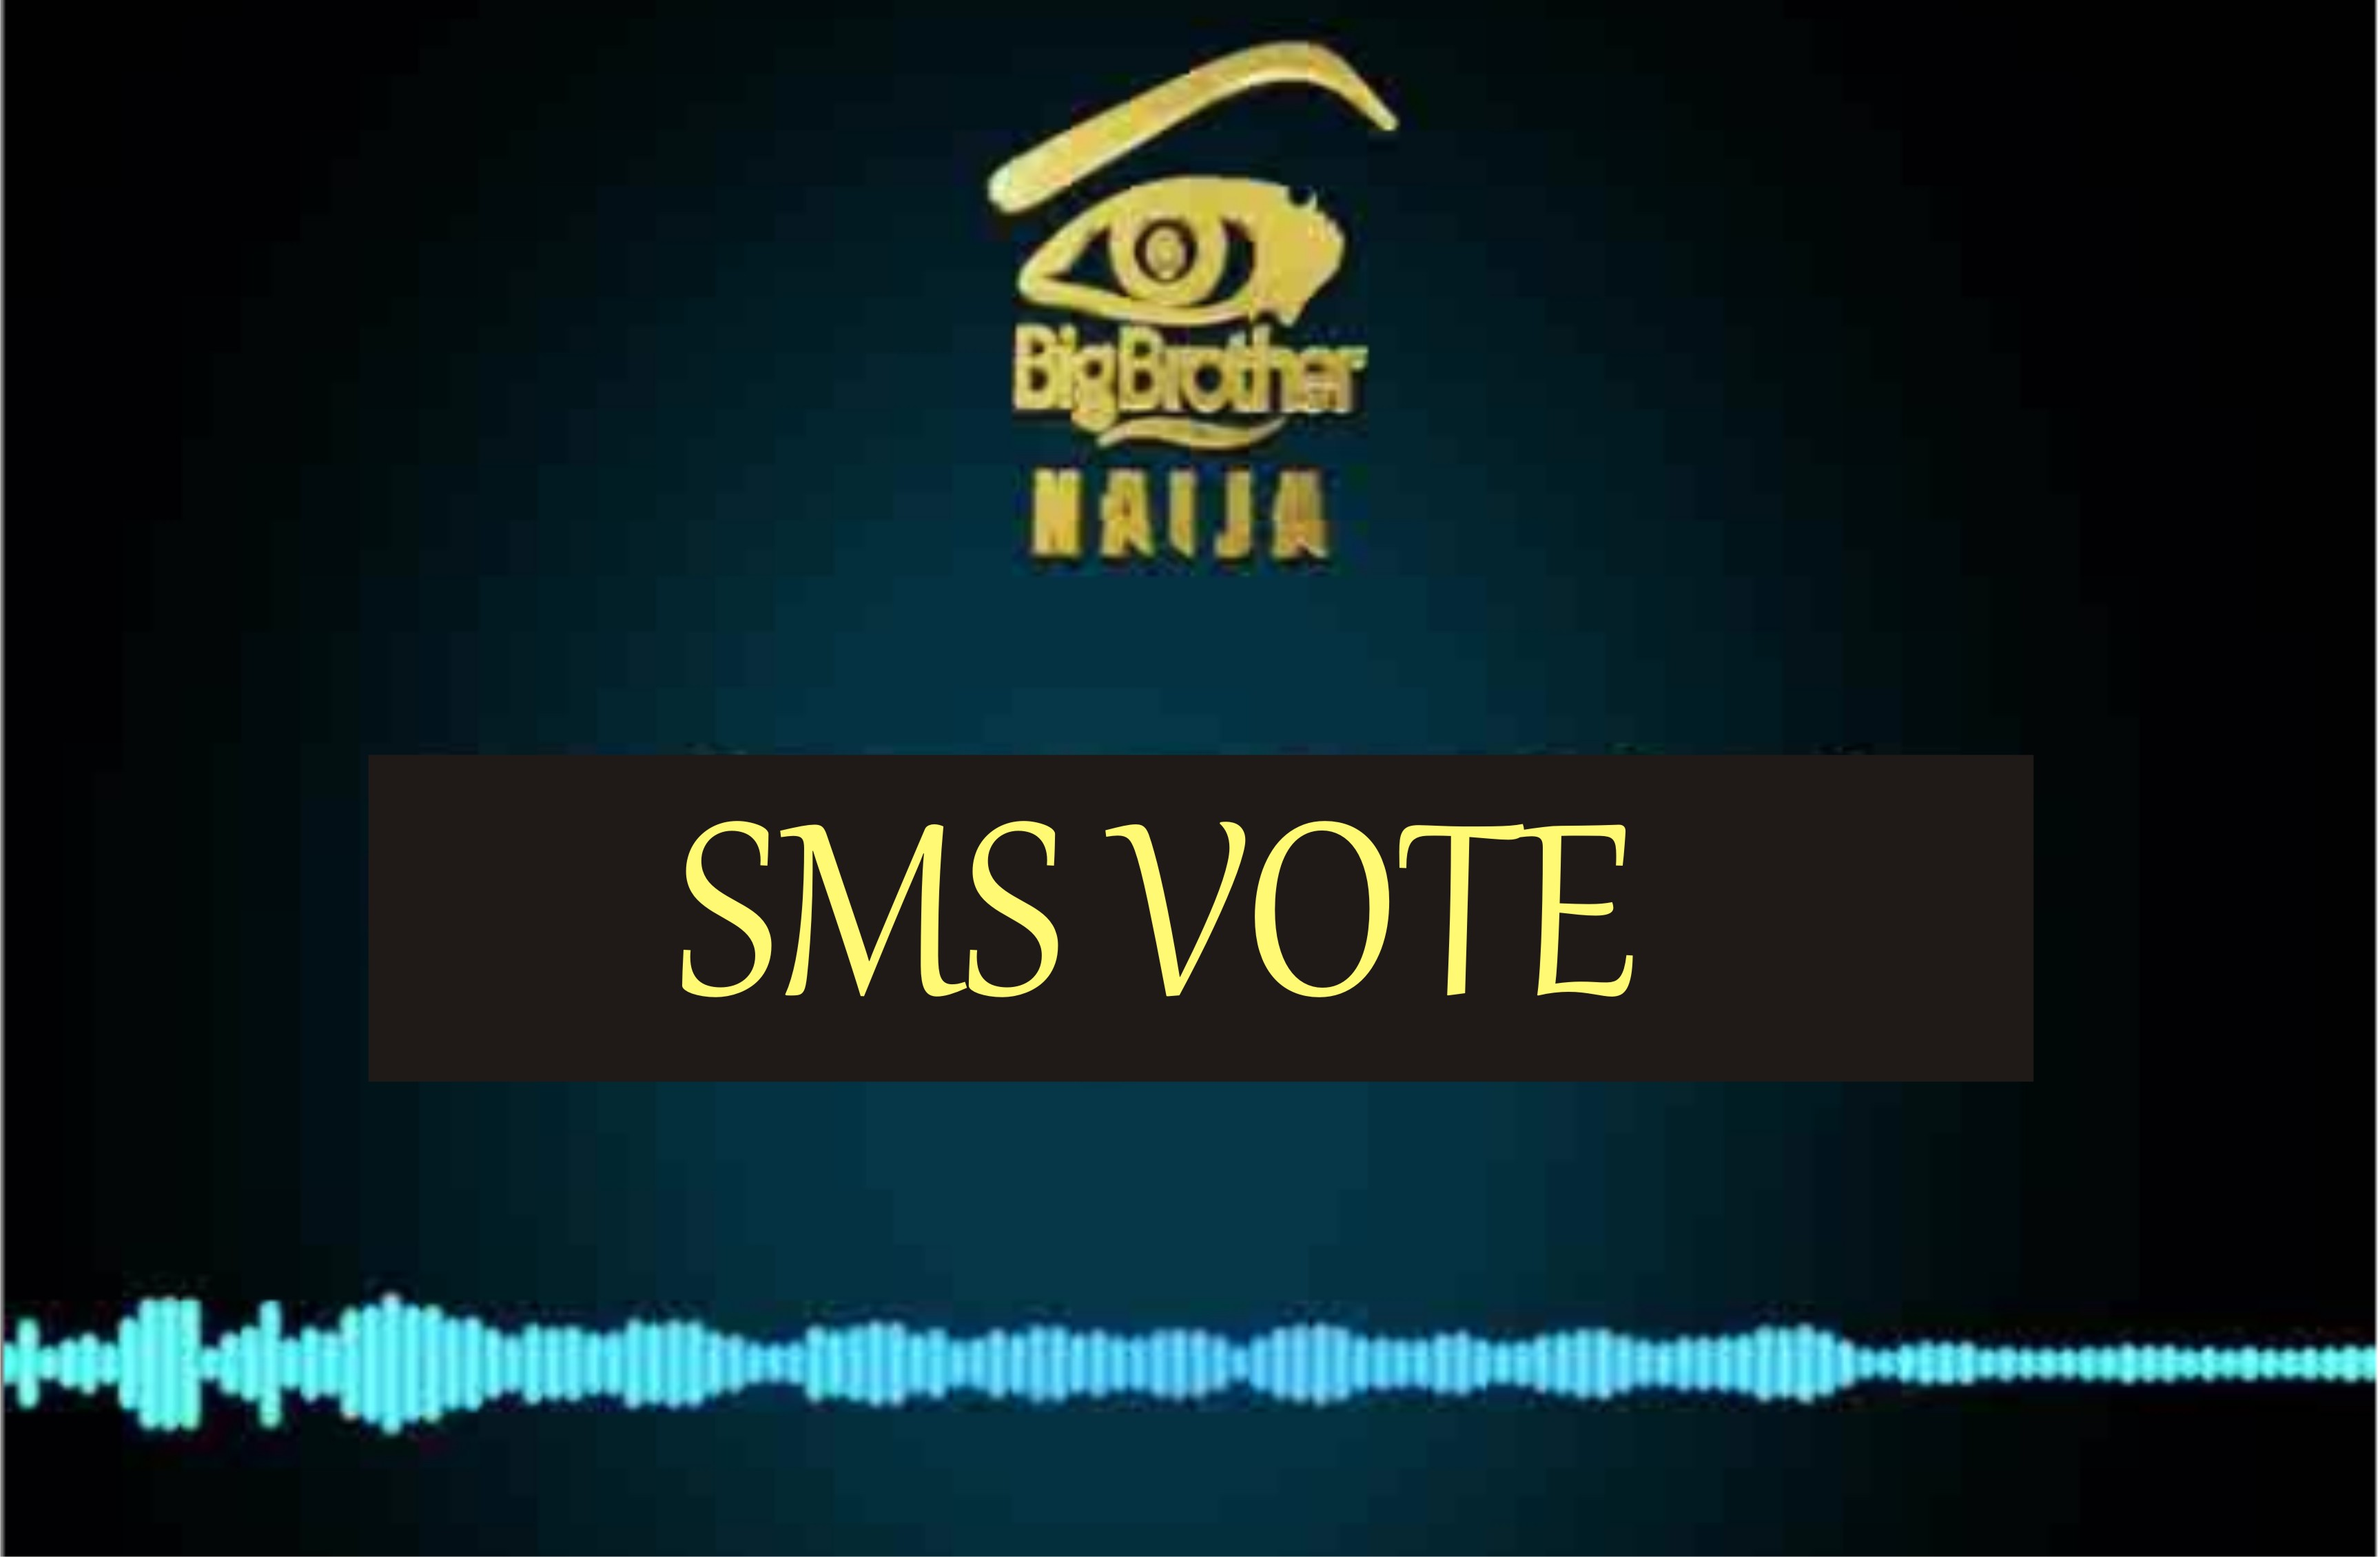 How to Vote for BBNaija 2019 Housemate with SMS voting | BBN SMS Voting Code for Housemate